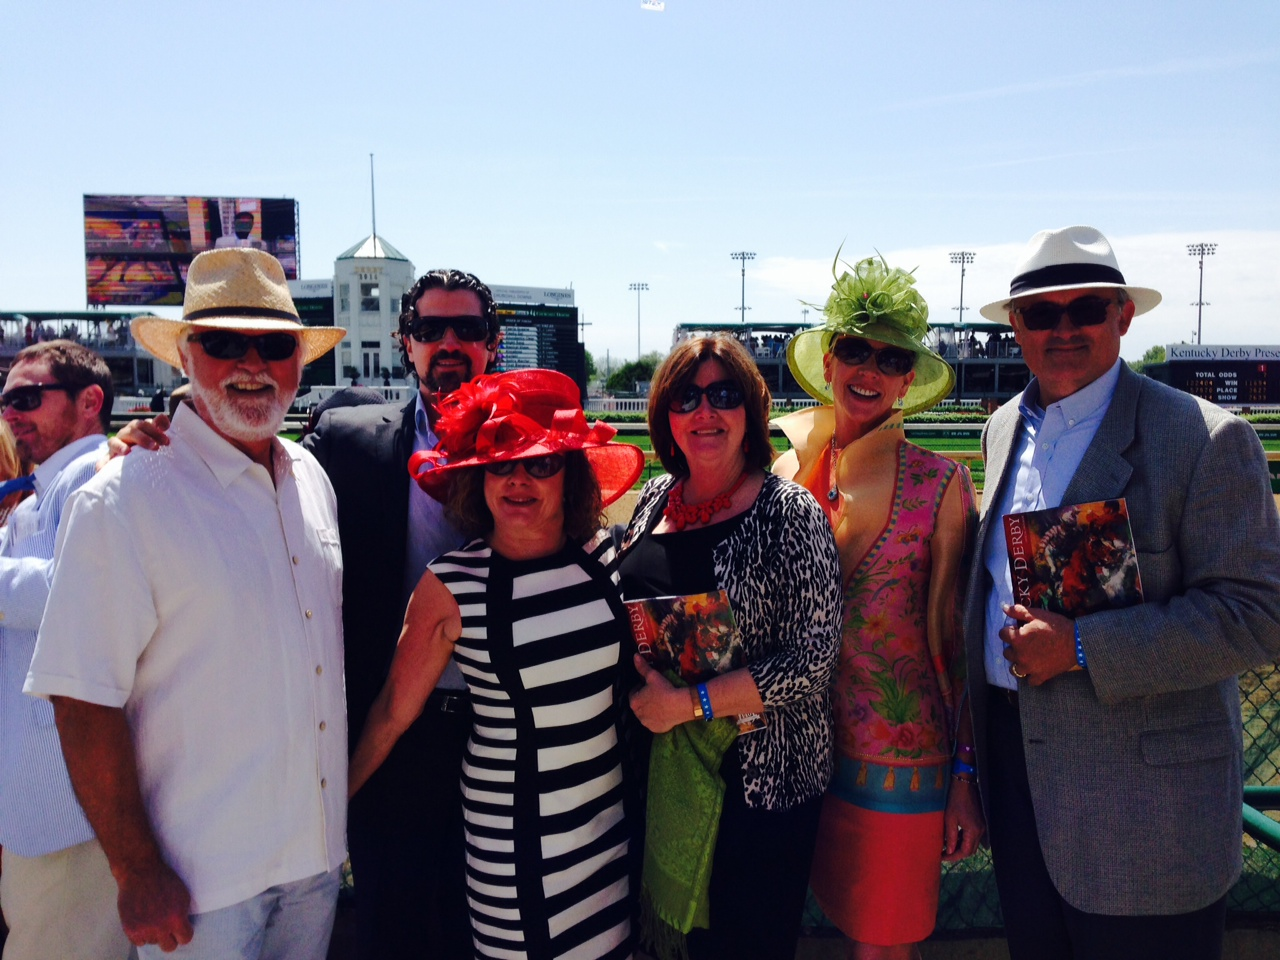 Kentucky Derby day was bright--so we posed at the finish line between races. L-R: Michael, Aaron, Joy, Donna, Kelly & Curtis